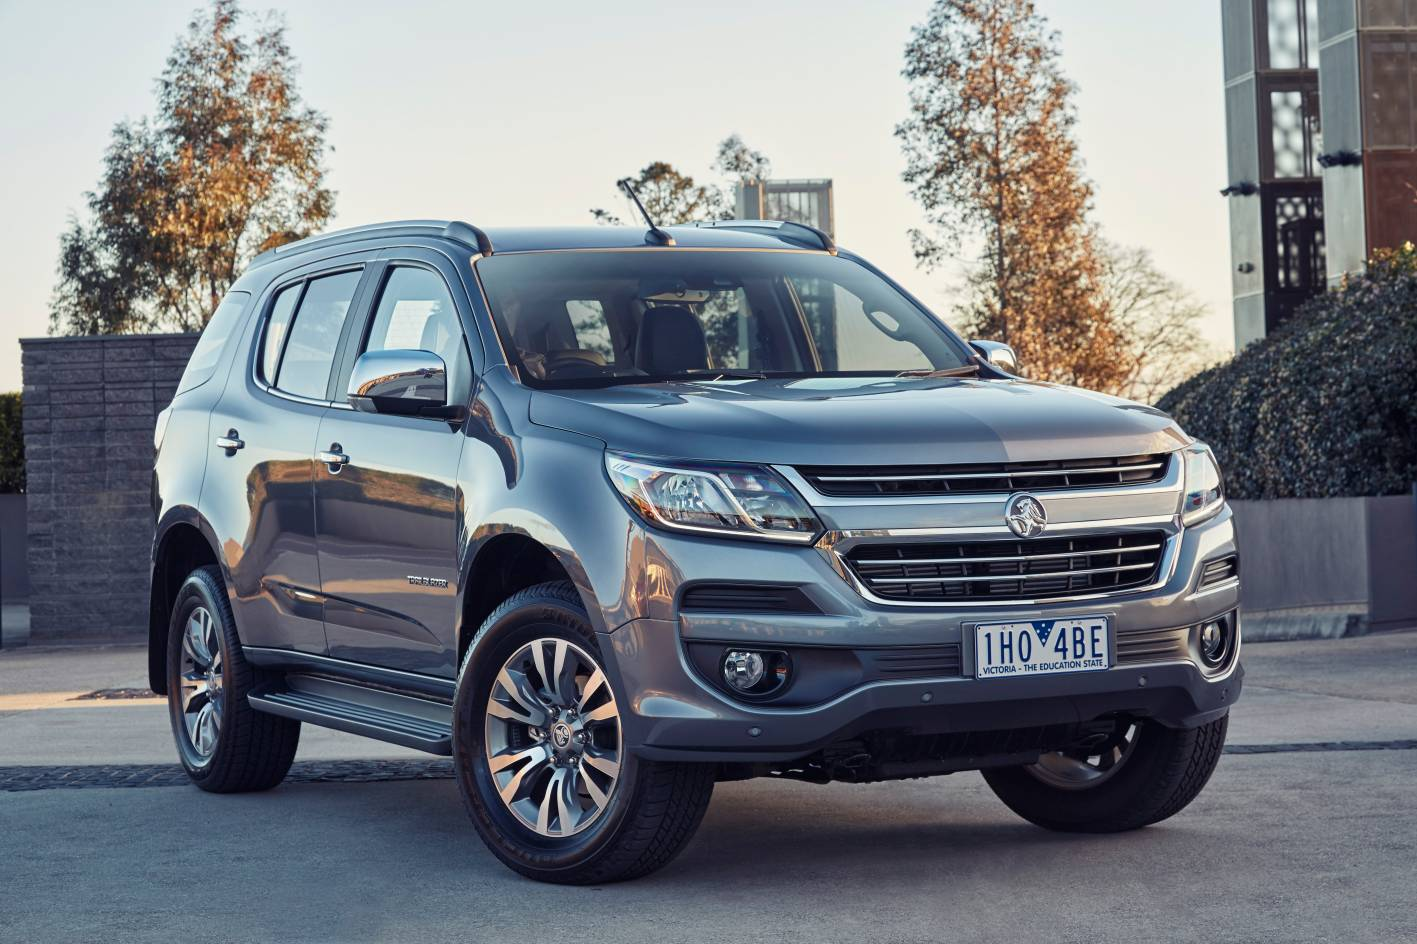 2017 Holden Trailblazer - Price And Features For Australia